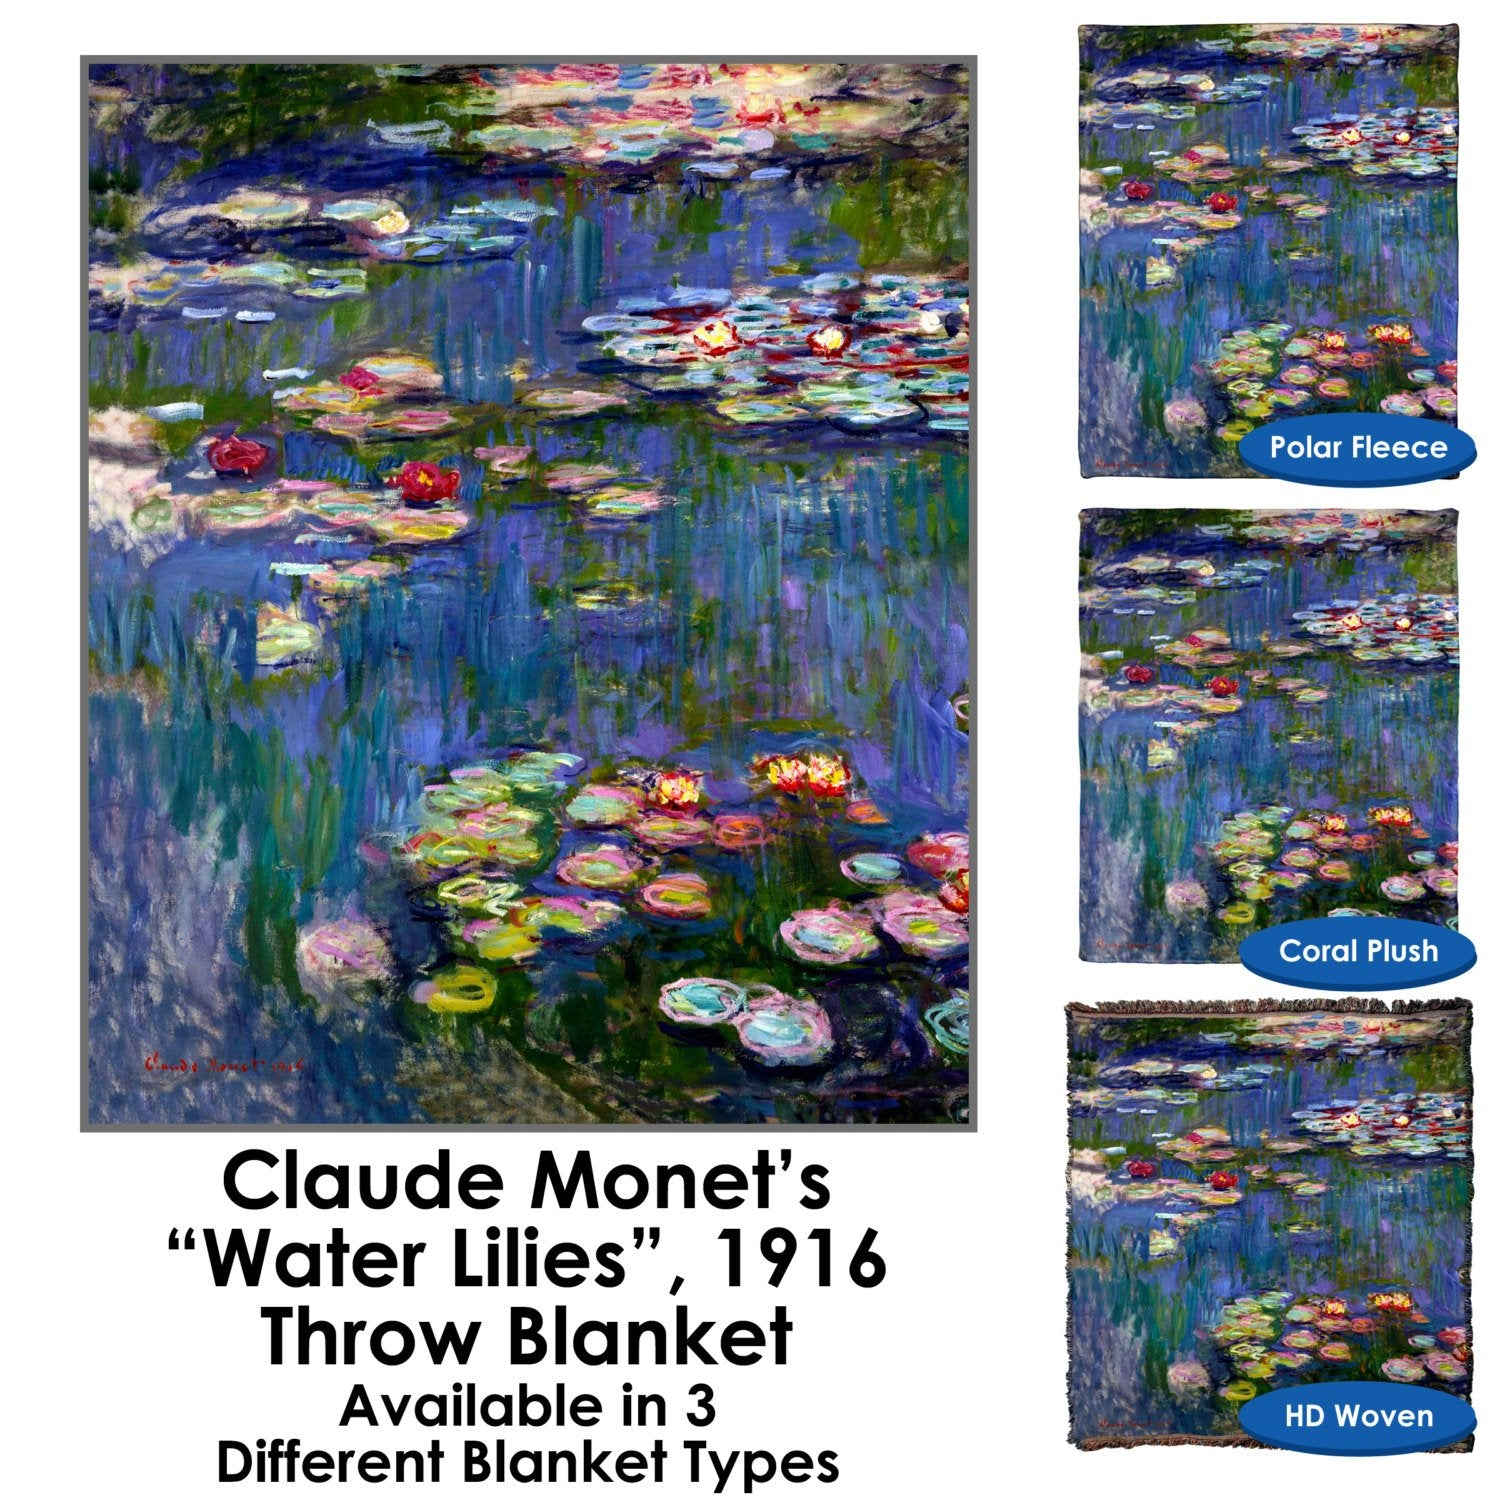 Water Lilies 1916 by Claude Monet Throw Blanket / Tapestry Wall Hanging – Standard Multi-color